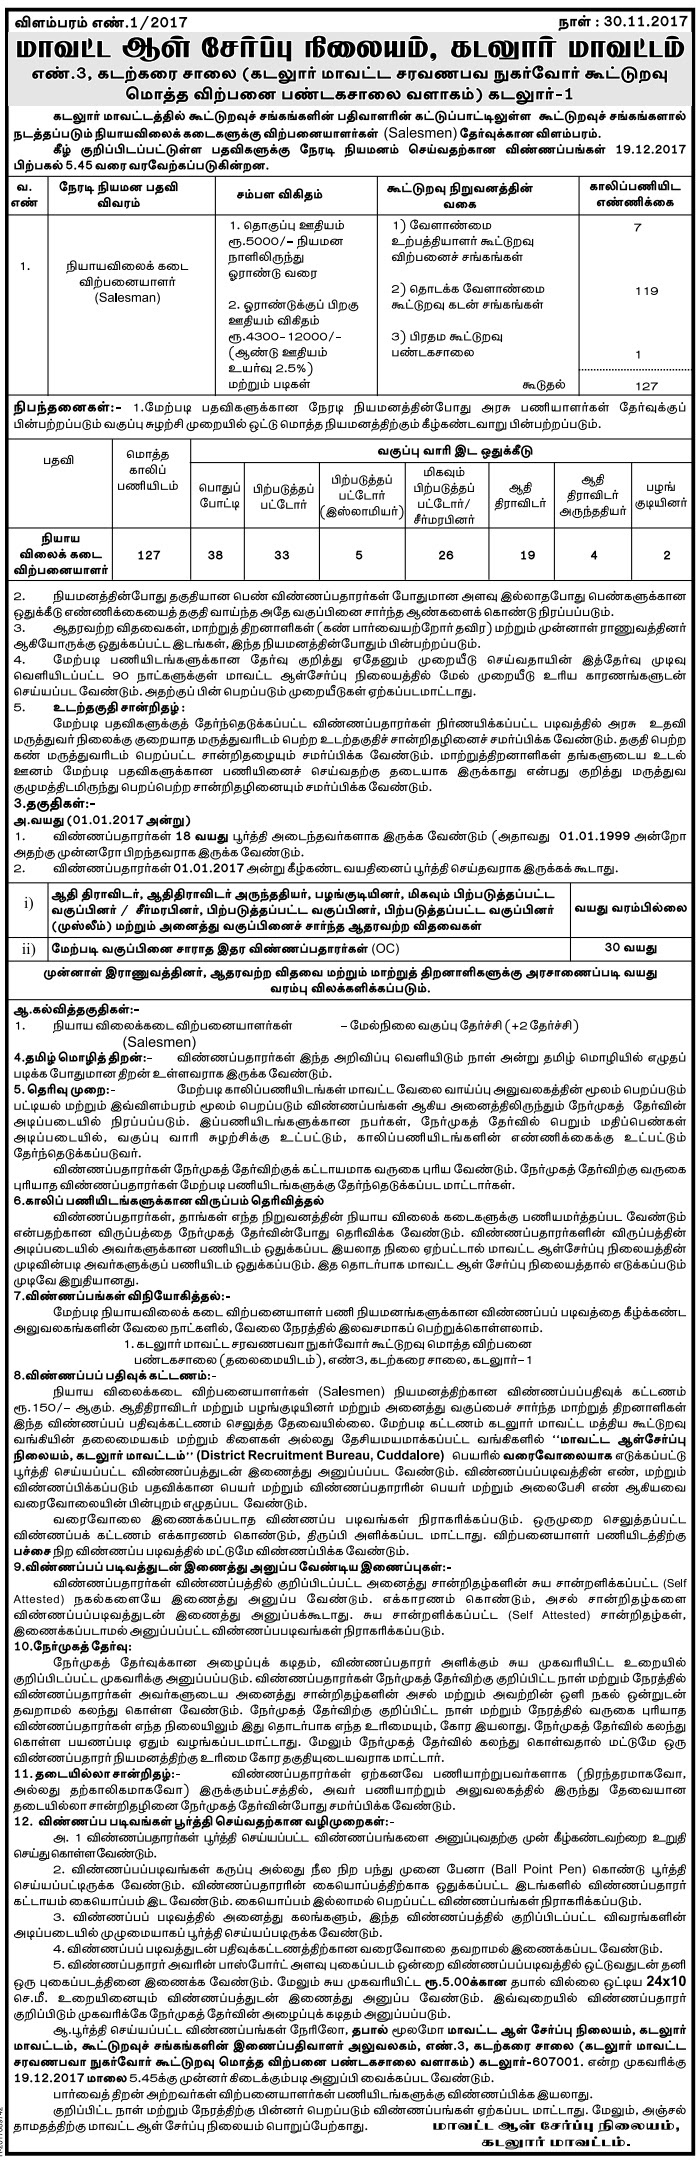 Cuddalore District Ration Shop 127 Recruitment 2017-2018